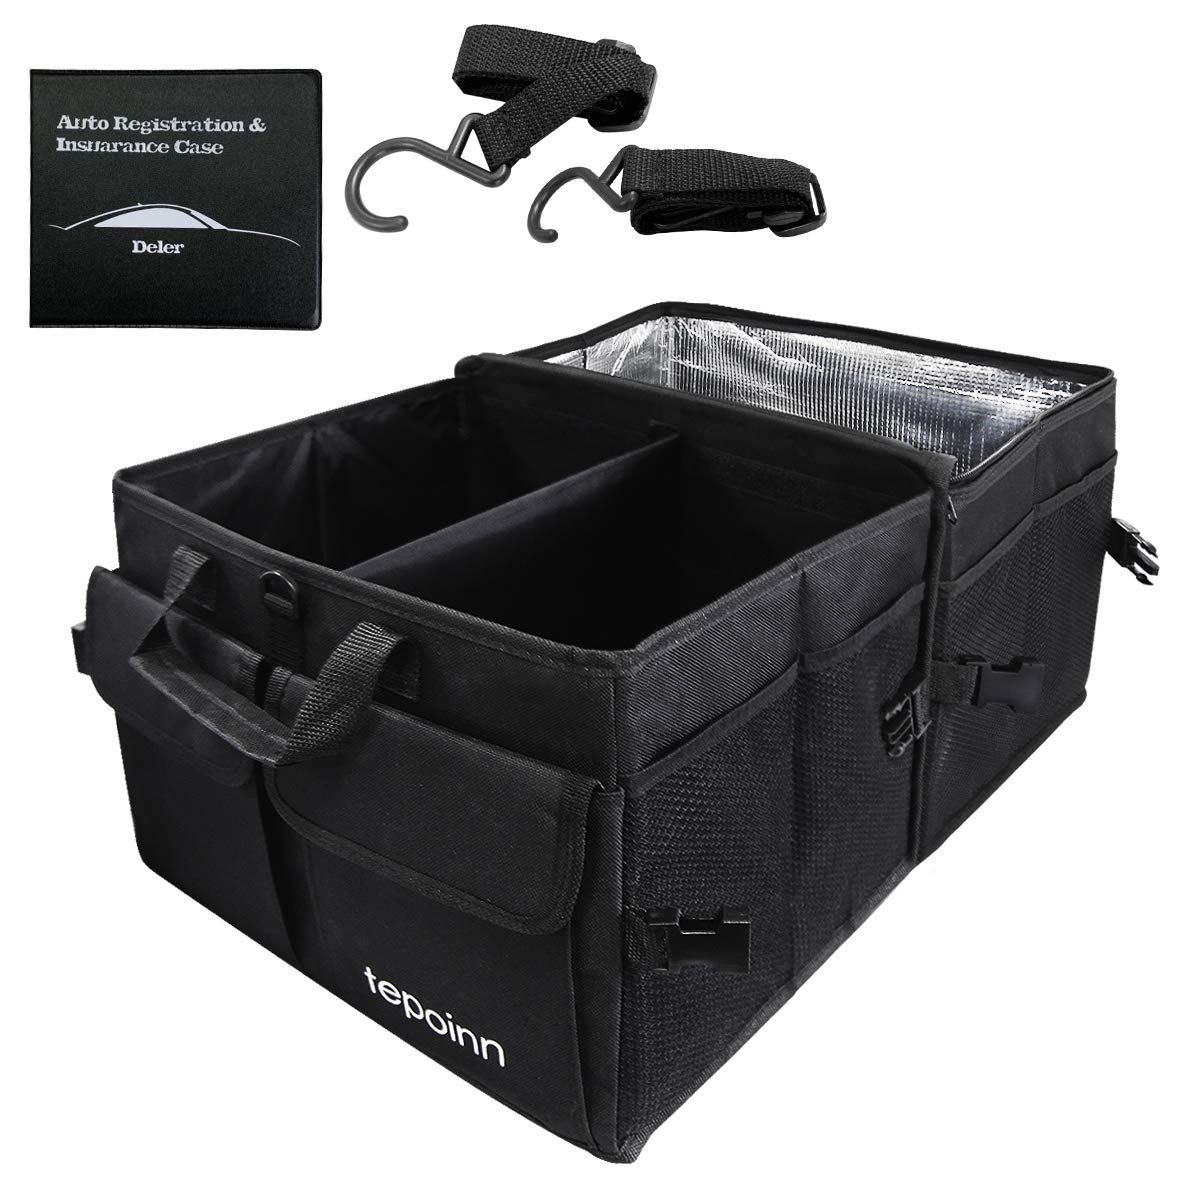 Tepoinn Car Trunk Organizer with Cooler, Compartment Collapsible Portable Trunk Storage Container with Non Slip Bottom Strips, Foldable Waterproof Cover Car Storage Box for SUV by Tepoinn